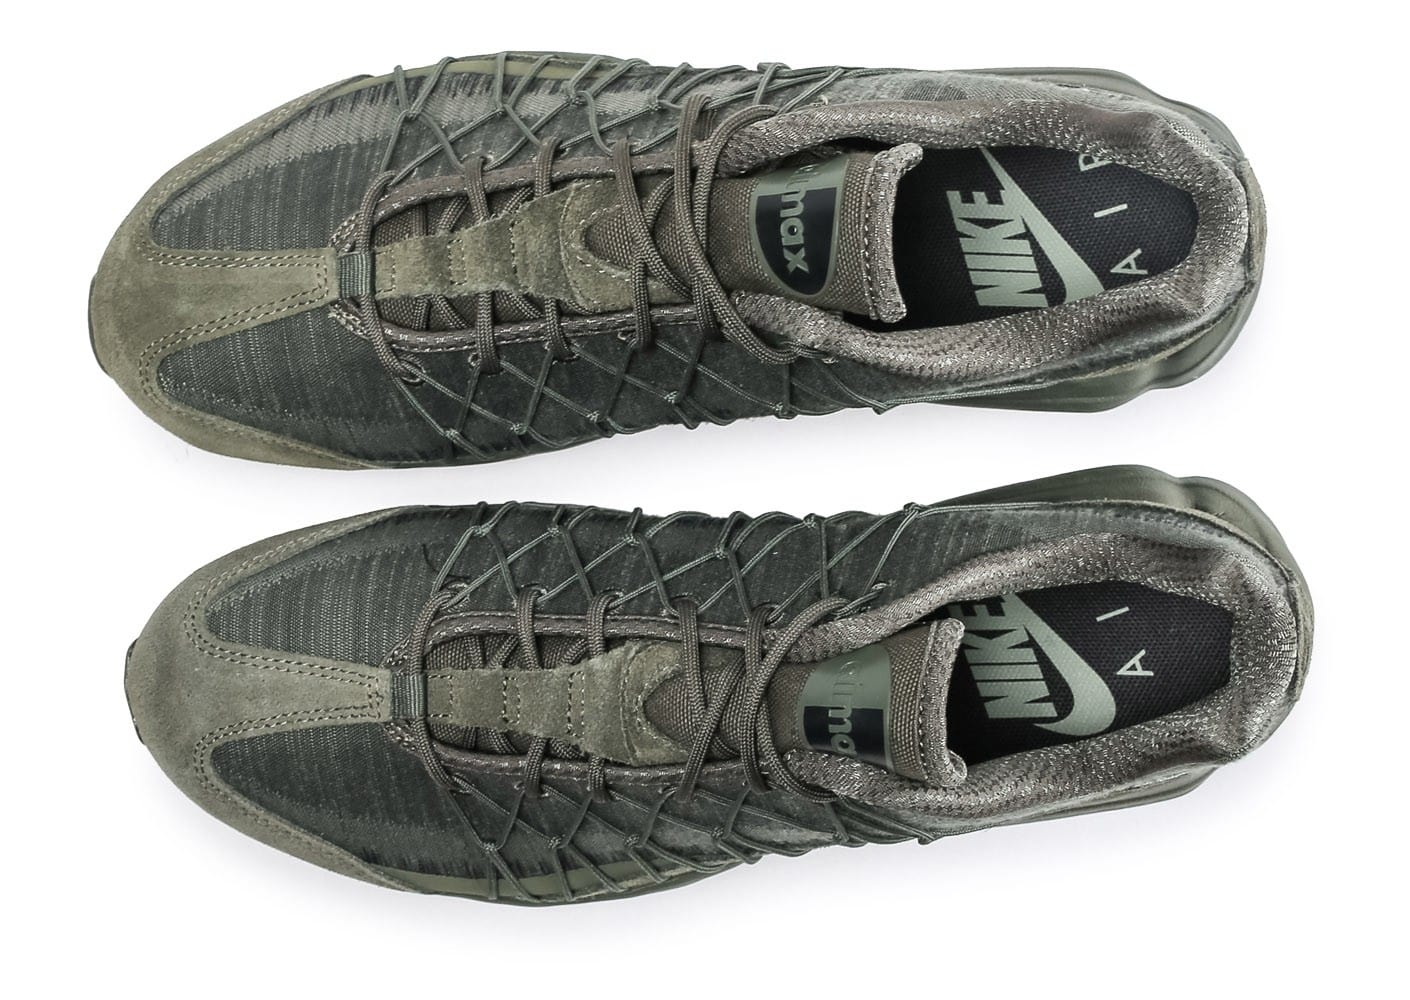 new product d766a 50636 ... Chaussures Nike Air Max 95 Ultra Jacquard kaki vue arrière ...